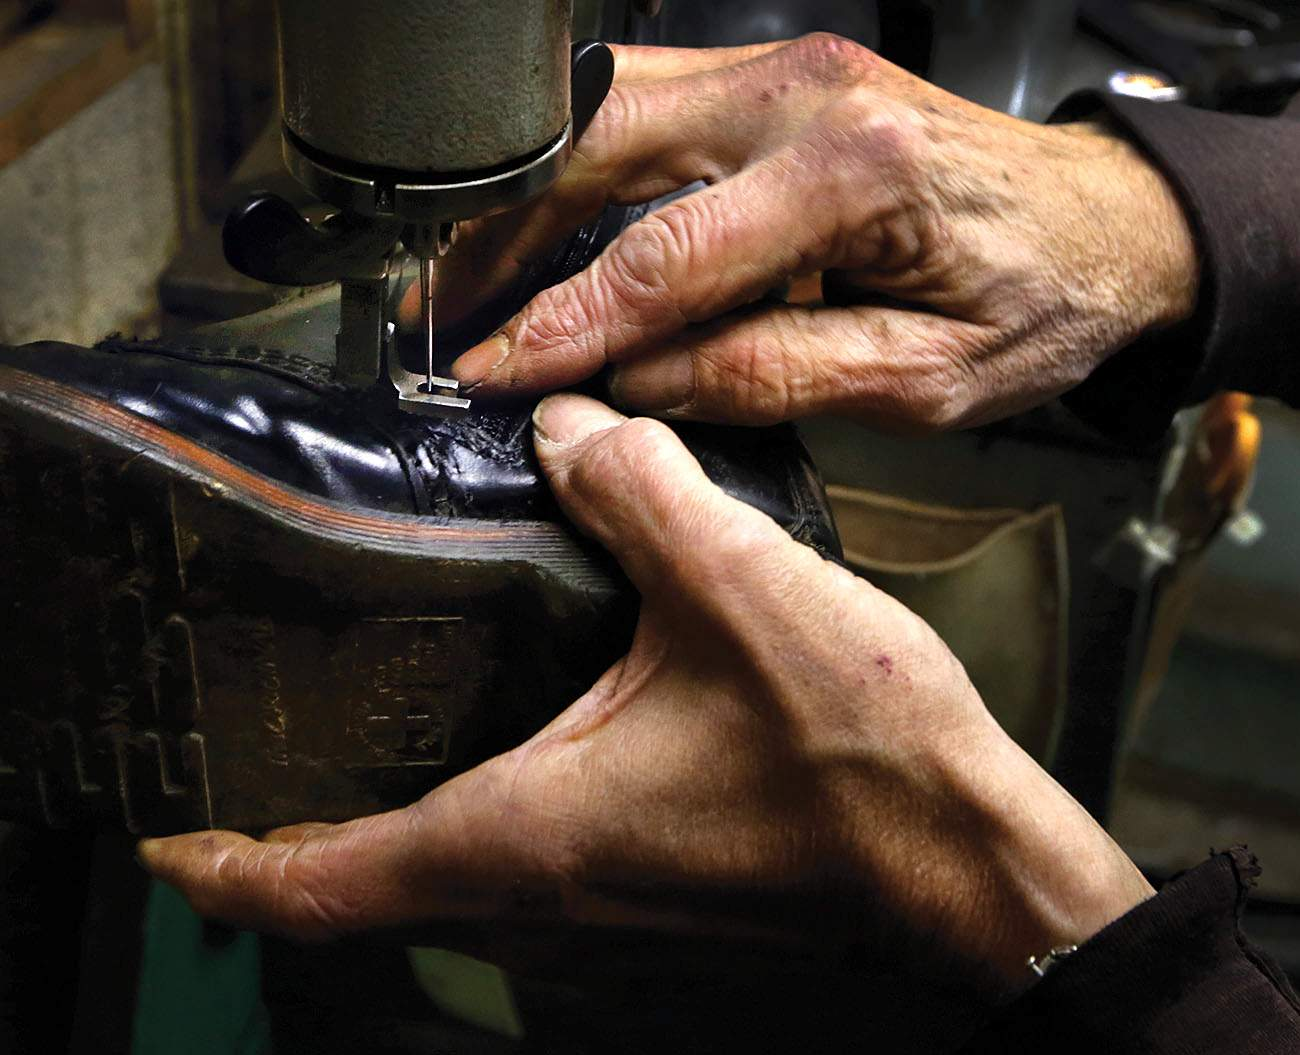 Landis Boot Shoe Repair Closes After 90 Years